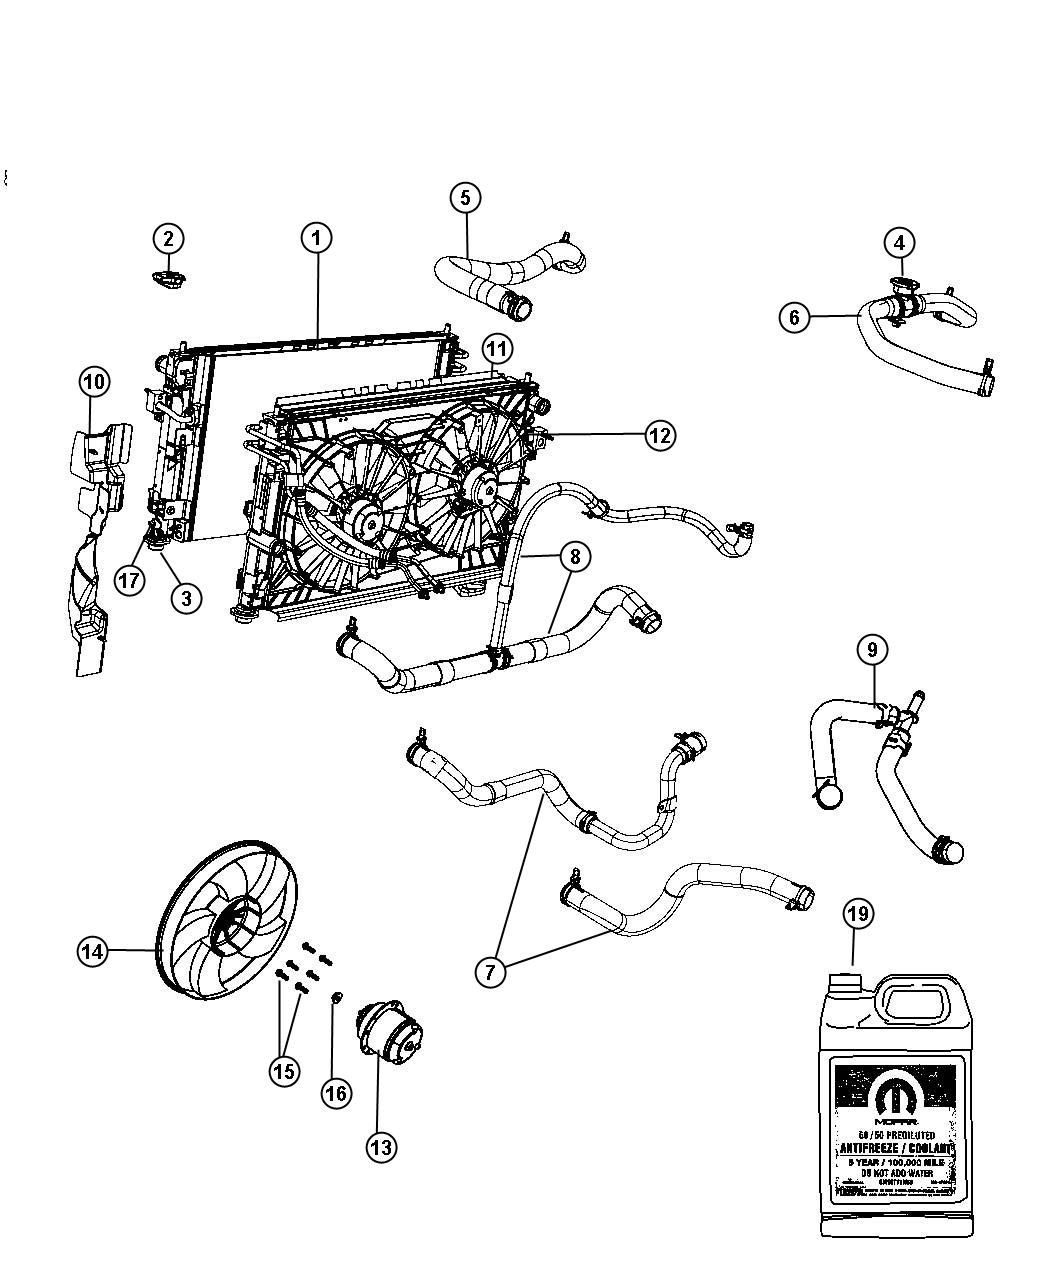 Chrysler Sebring Engine Diagram